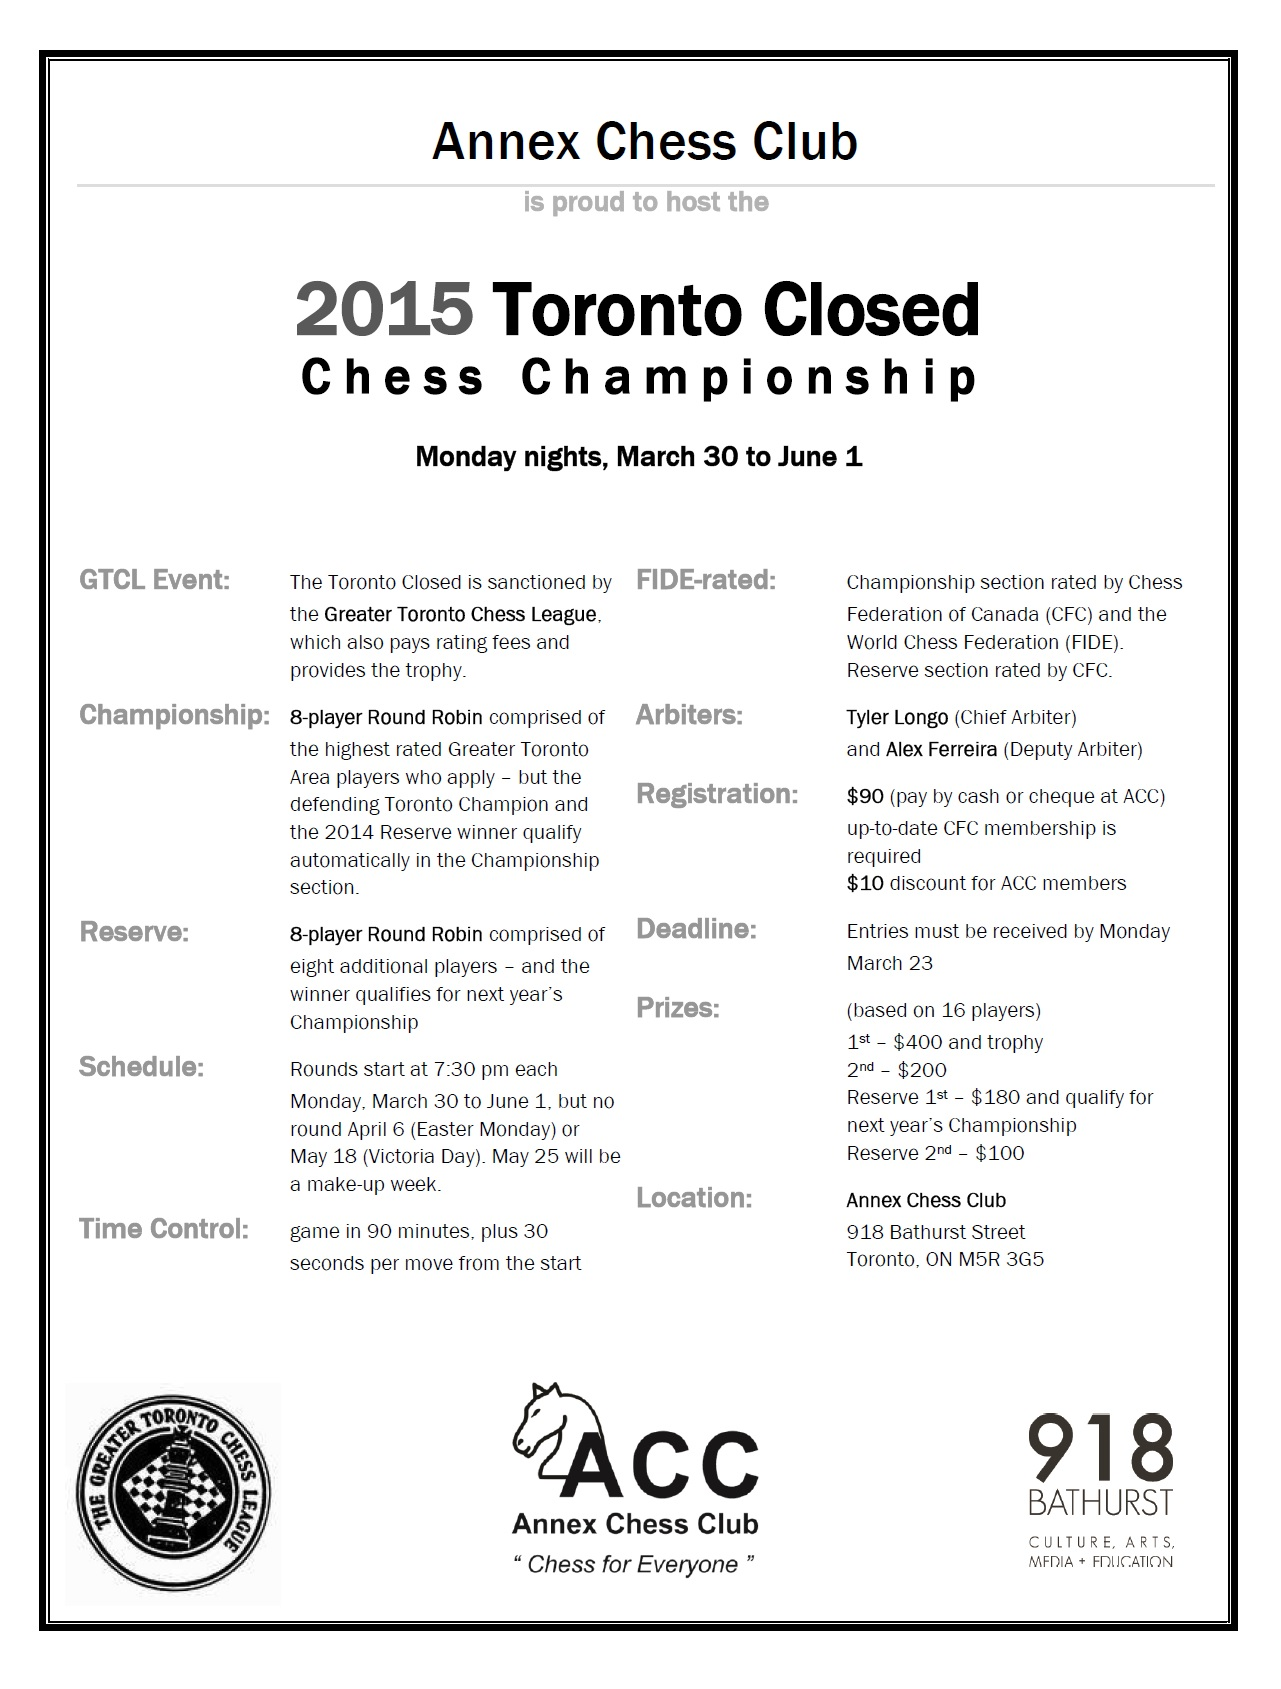 2015 Toronto Closed Flyer